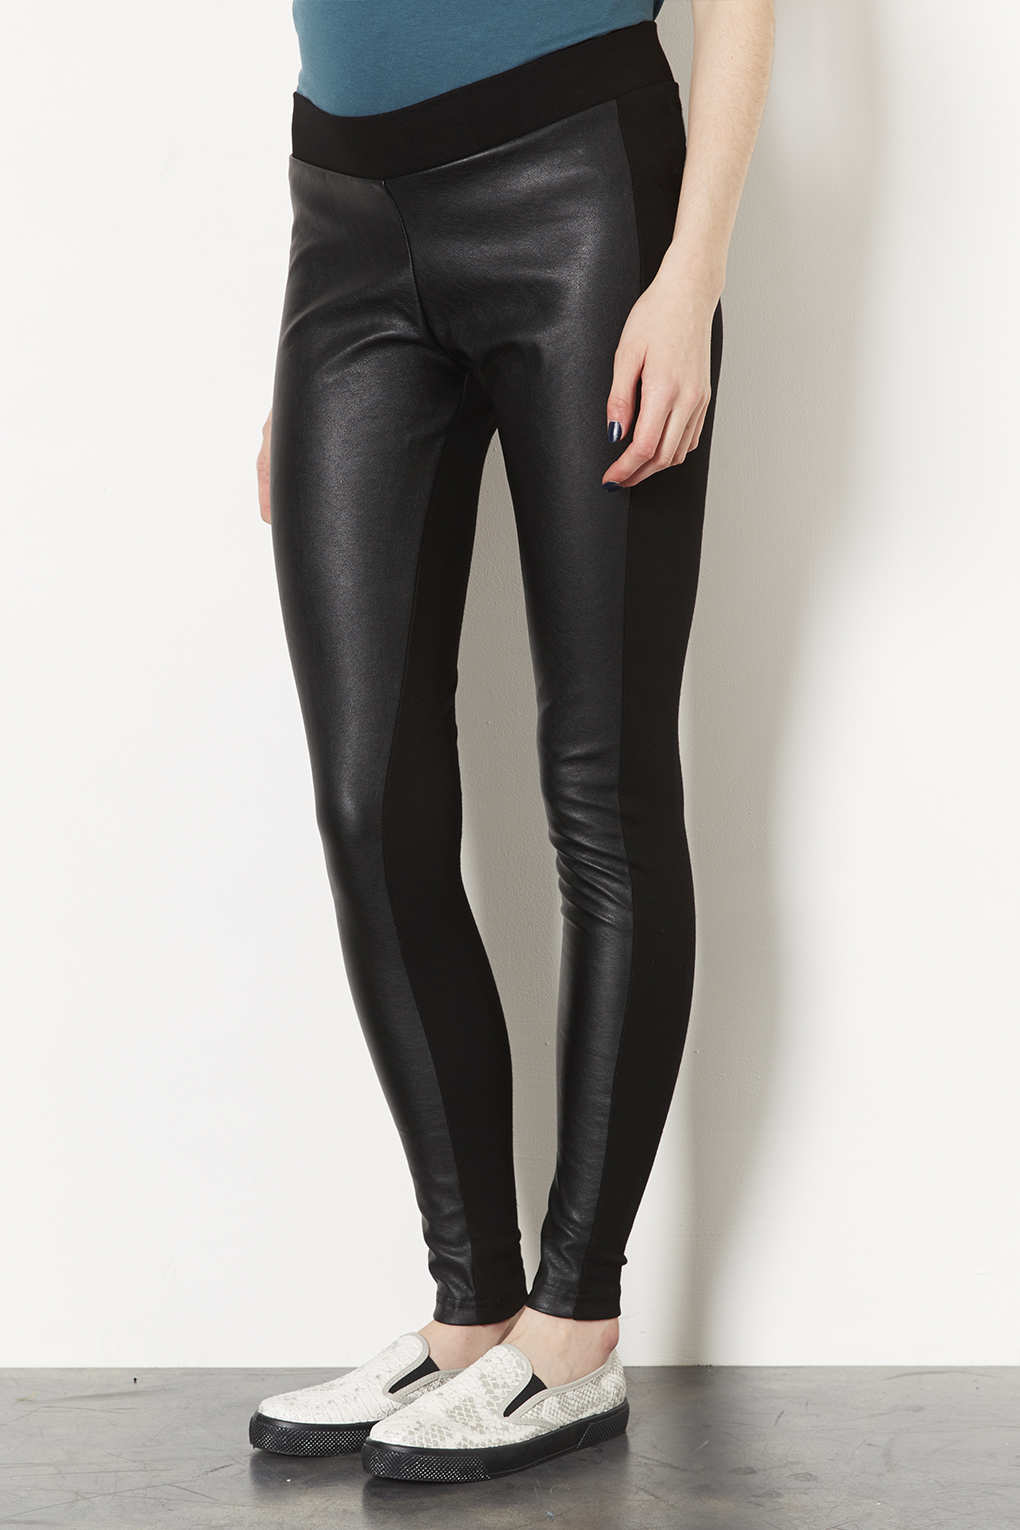 2fb2c8528b3a5e TOPSHOP Maternity Faux Leather Trousers in Black - Lyst